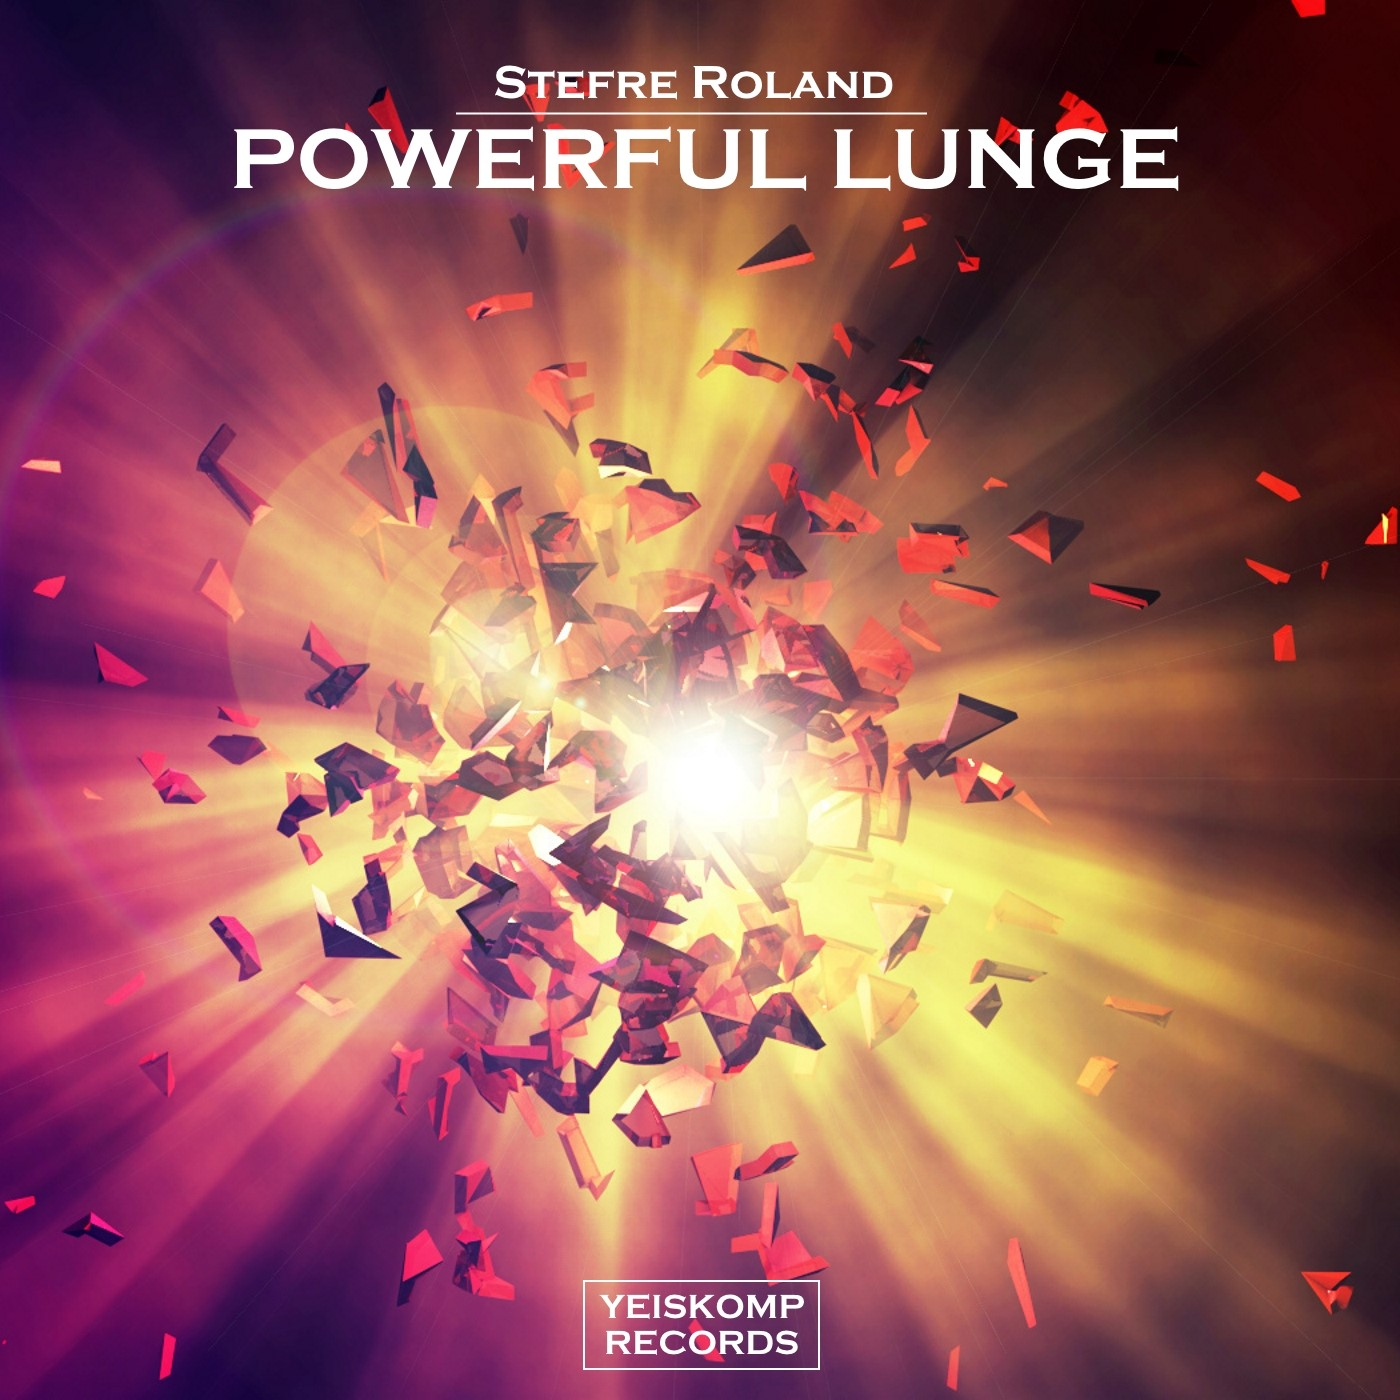 Stefre Roland - Powerful Lunge (Original Mix)